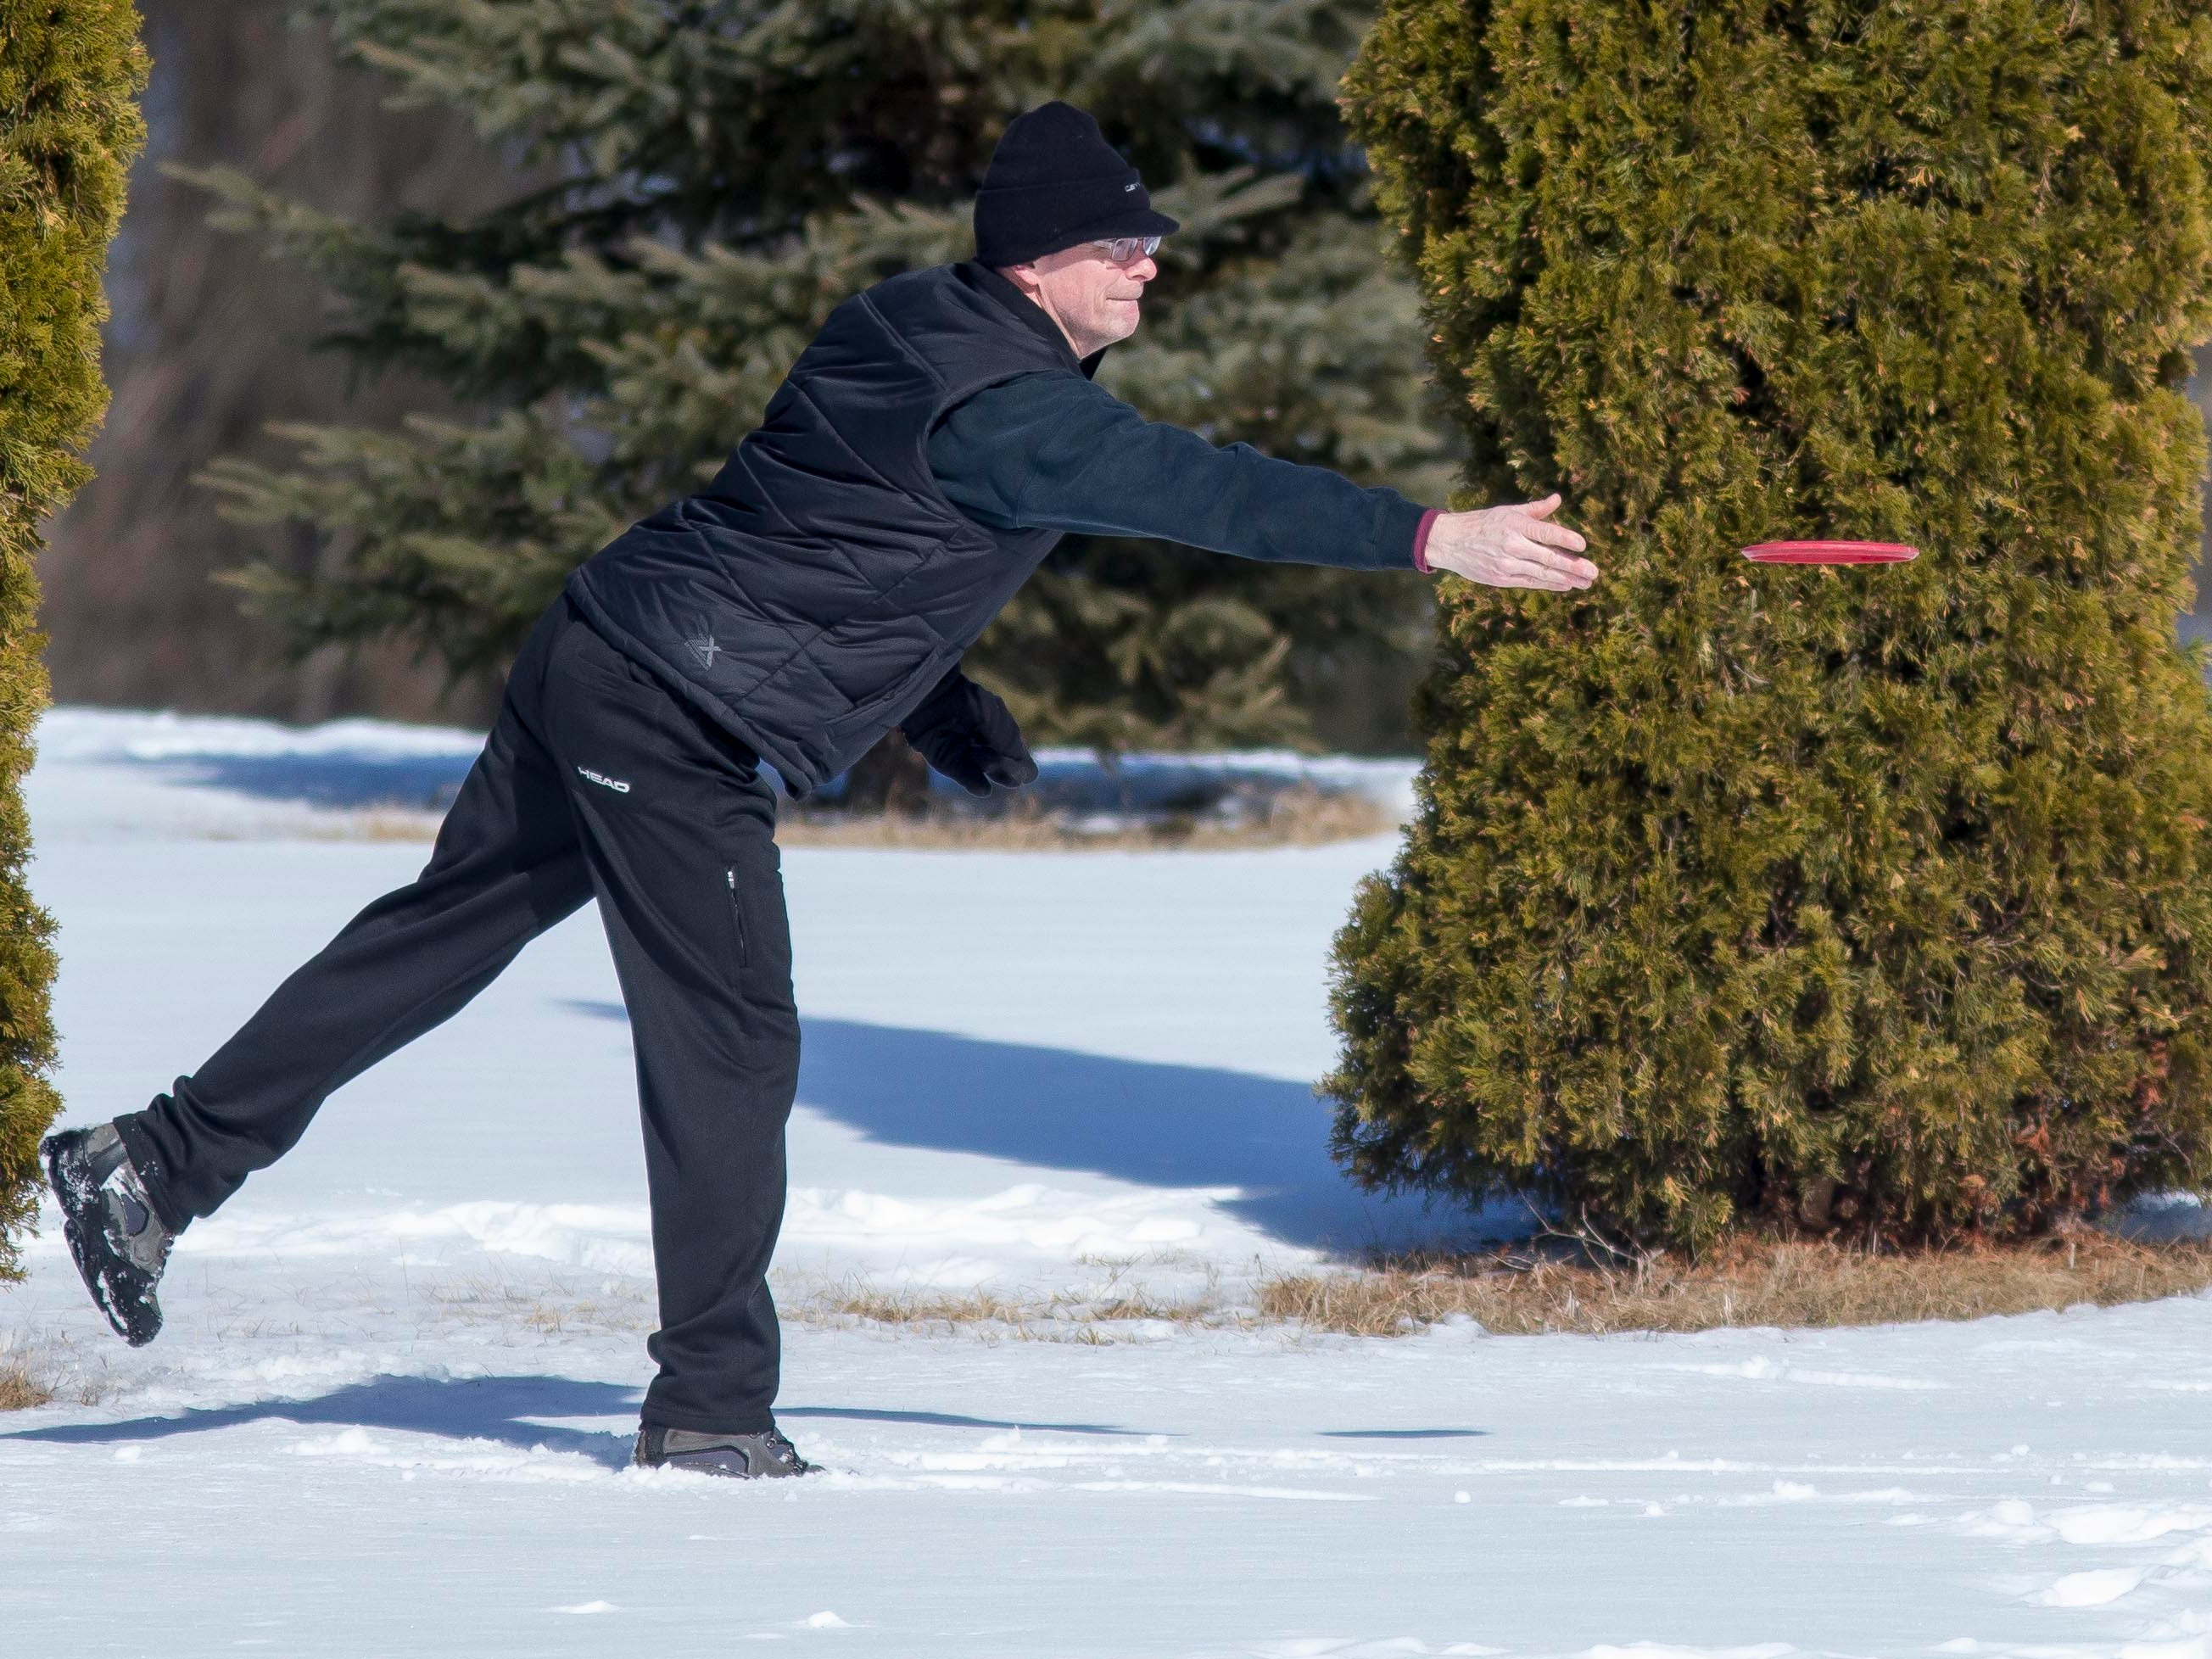 Jim Thielke of Sheboygan throws a disk at Quarry view Park while getting in some disk golf, Friday, March 9, 2018, in Sheboygan, Wis.